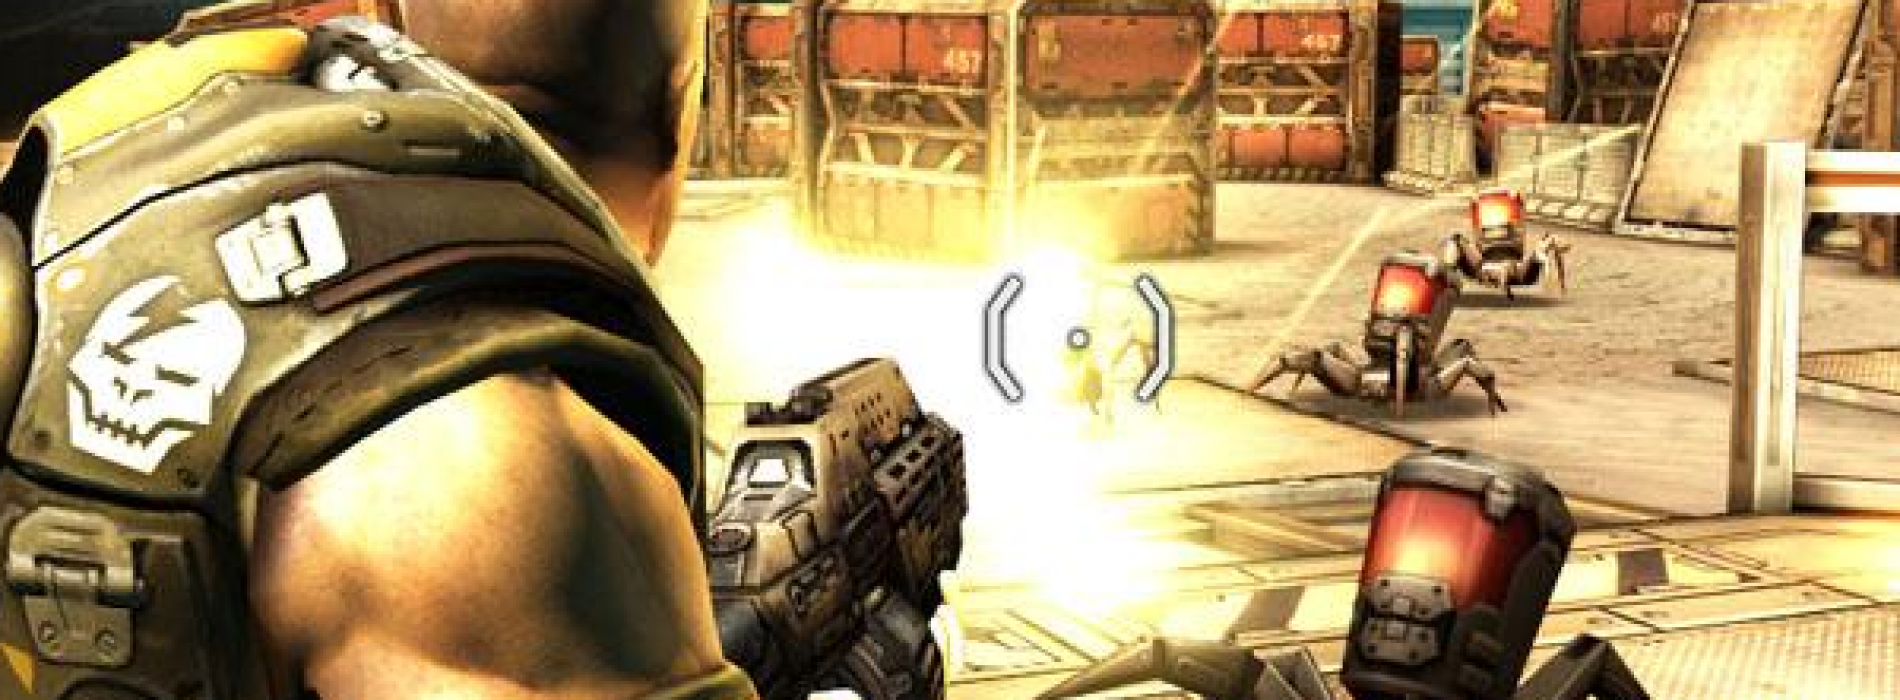 Shadowgun update allows for play non-Tegra device